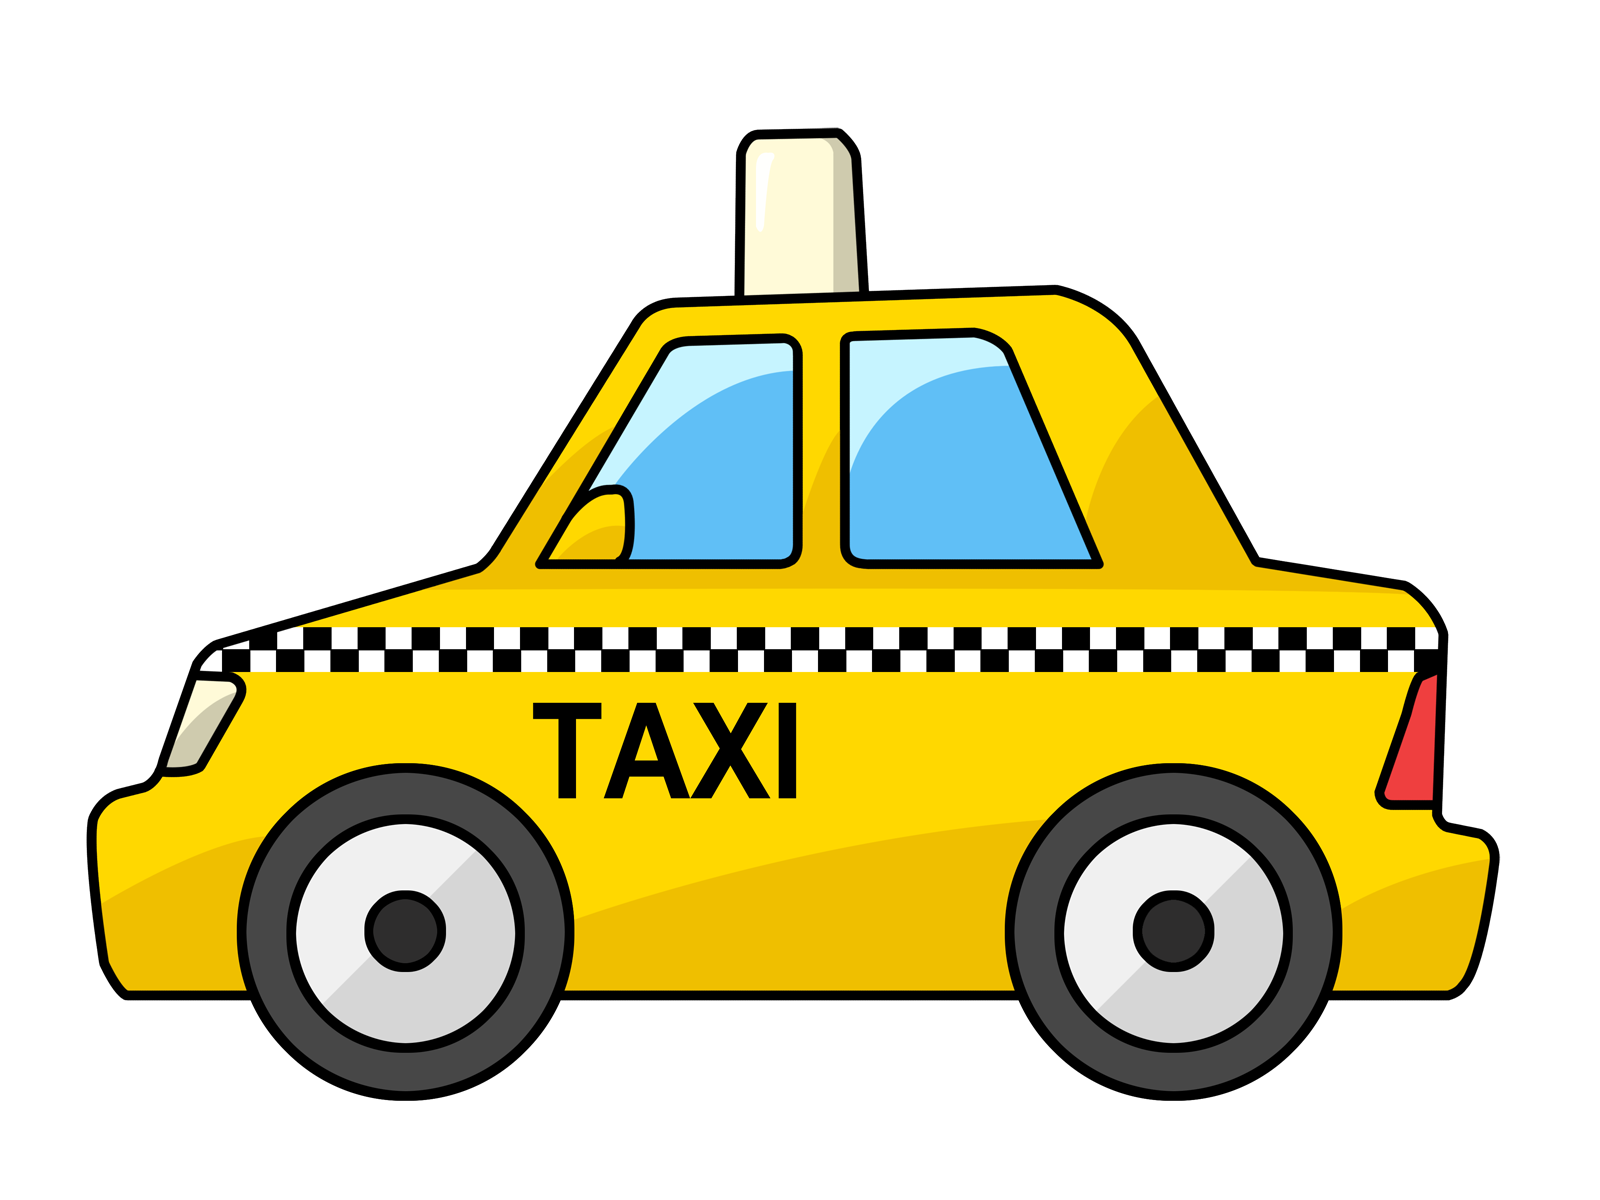 Unfortunately not all cabs look as nice as this